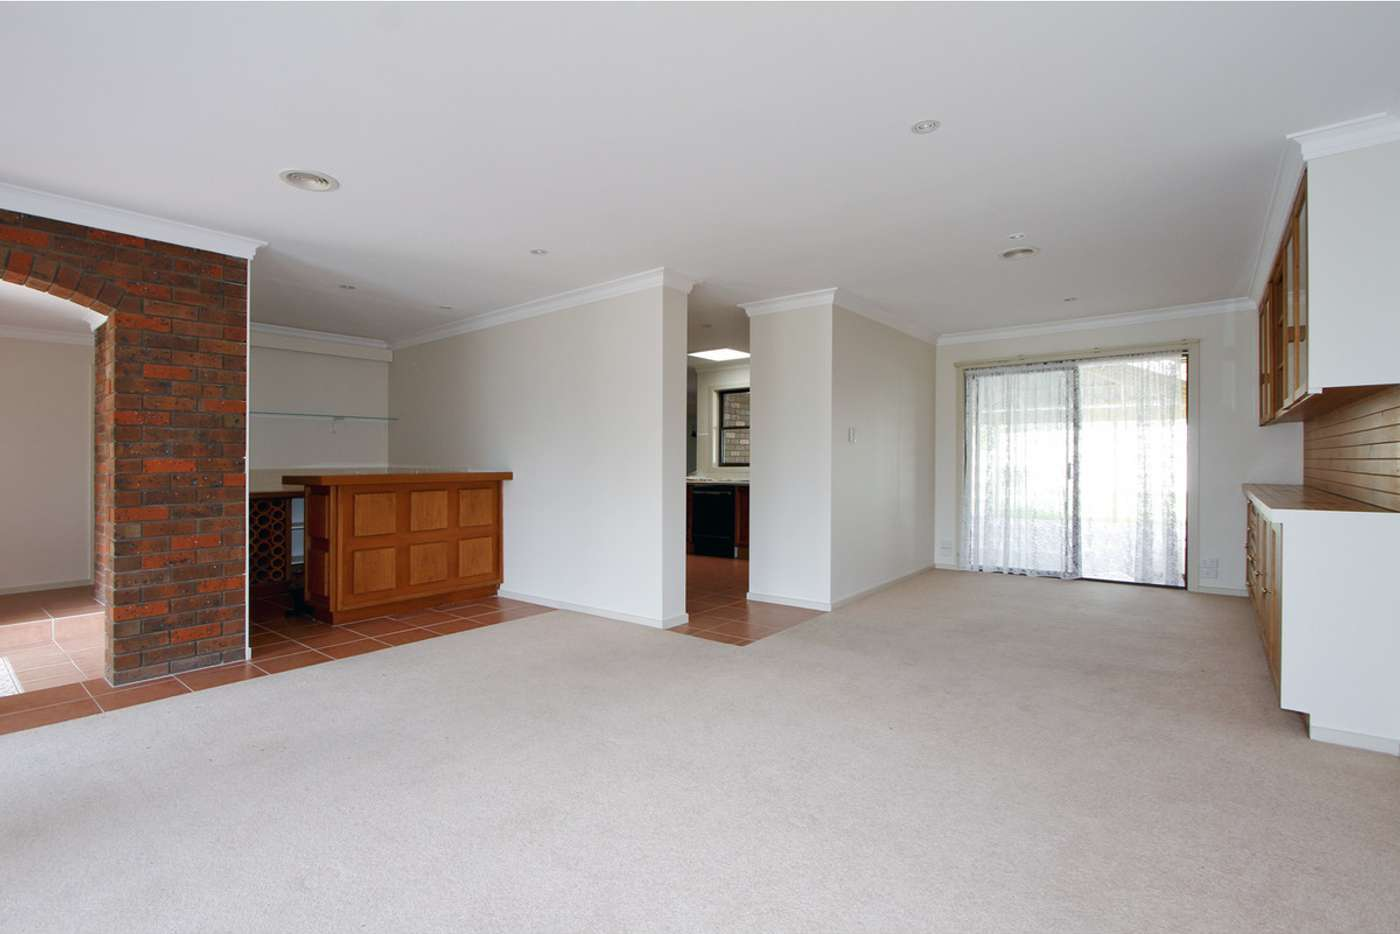 Fifth view of Homely house listing, 19 Thomson Street, Sale VIC 3850